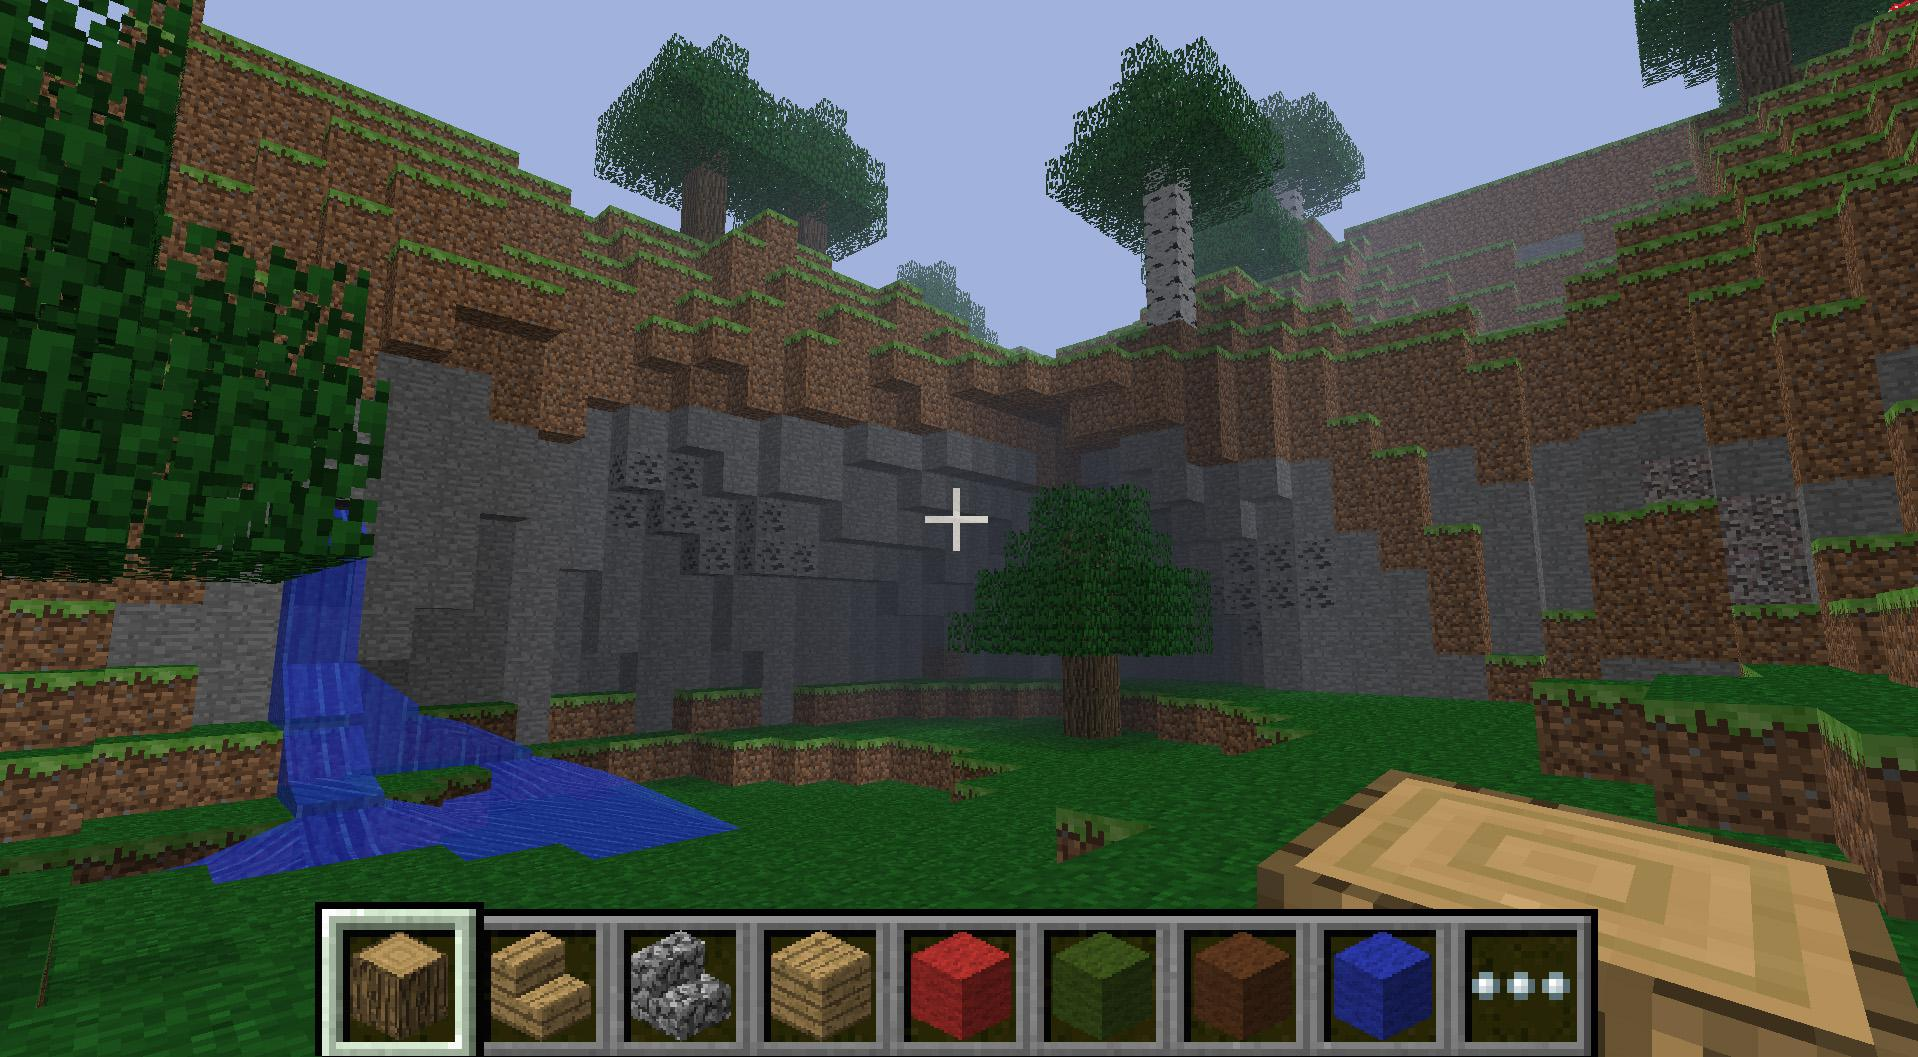 mojang_minecraft_screenshot_app